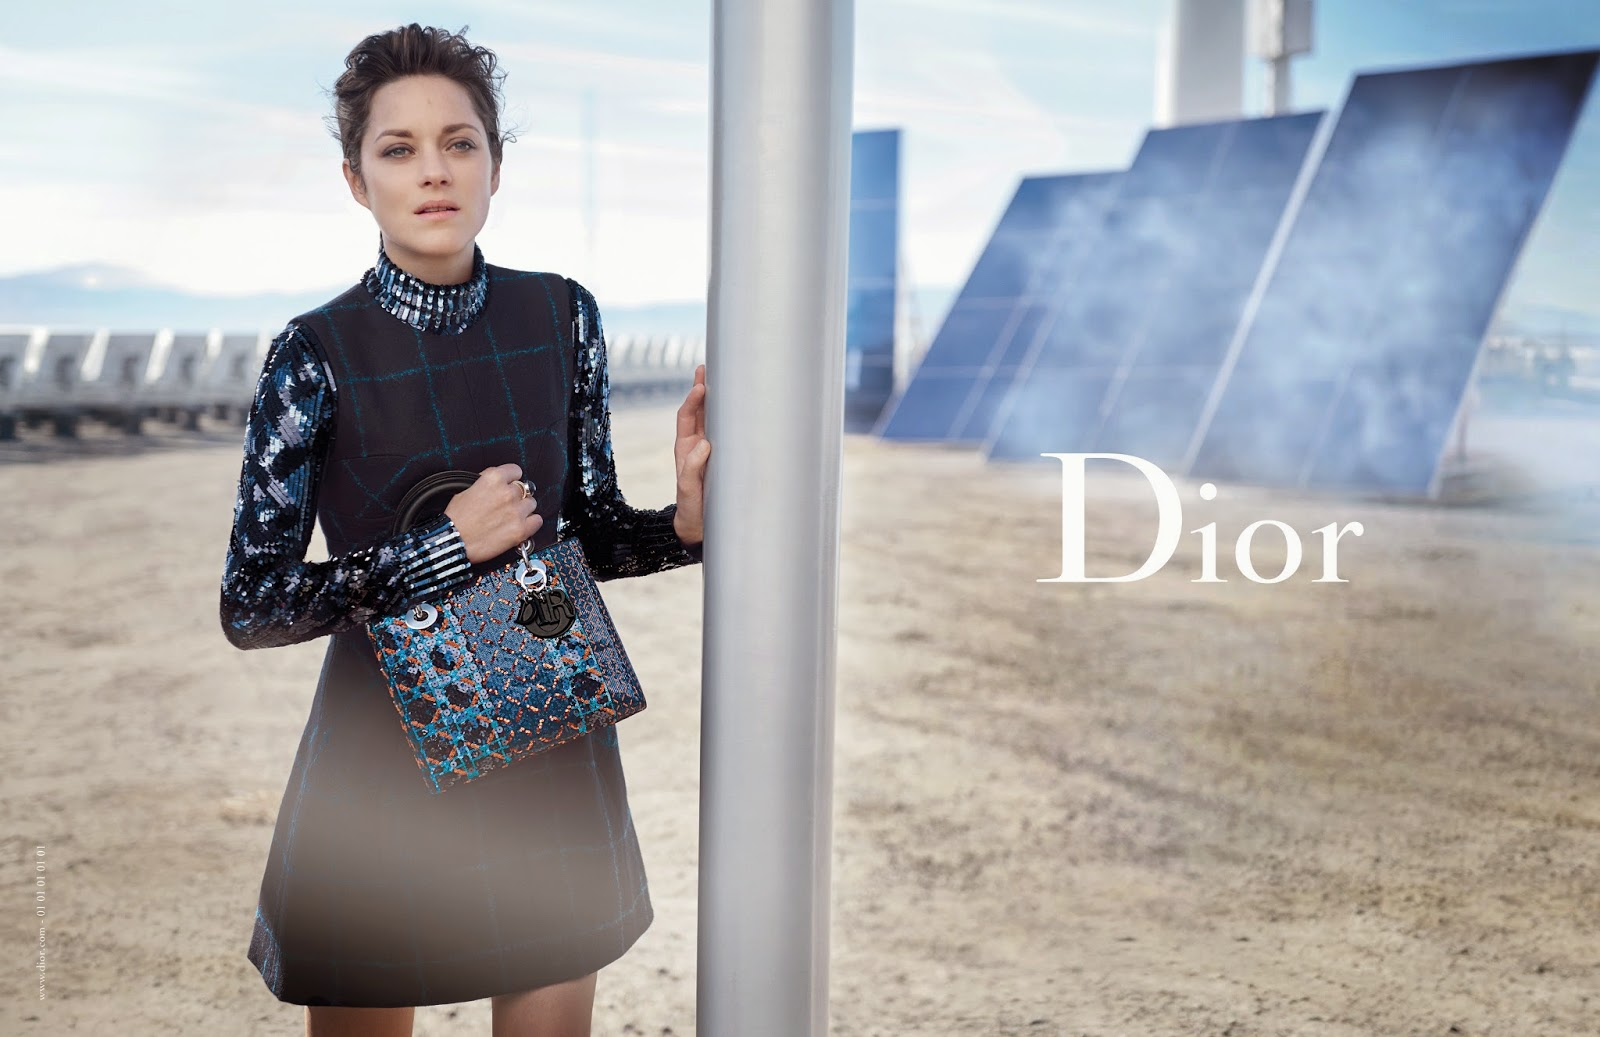 Marion Cotillard's Latest Lady Dior Ad Campaign